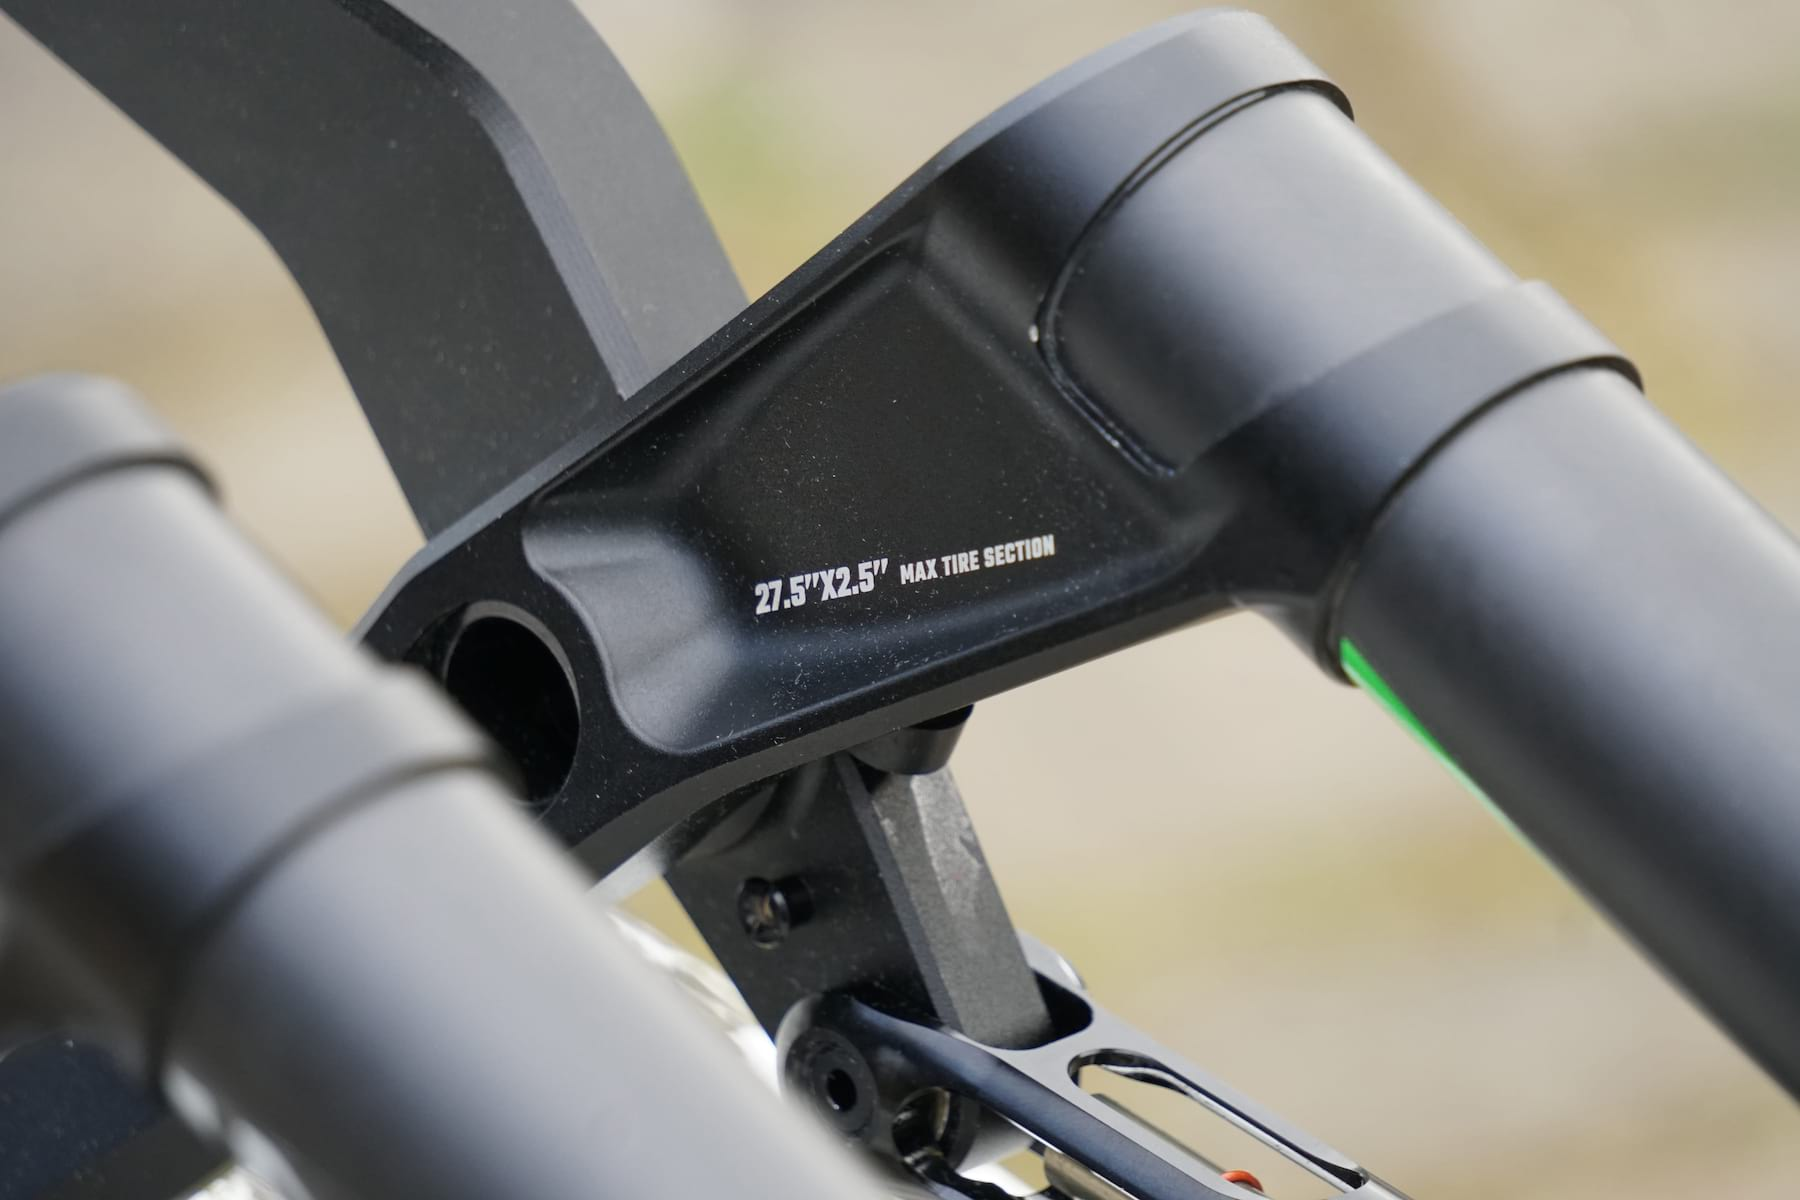 motion ride e18 linkage fork unboxing video